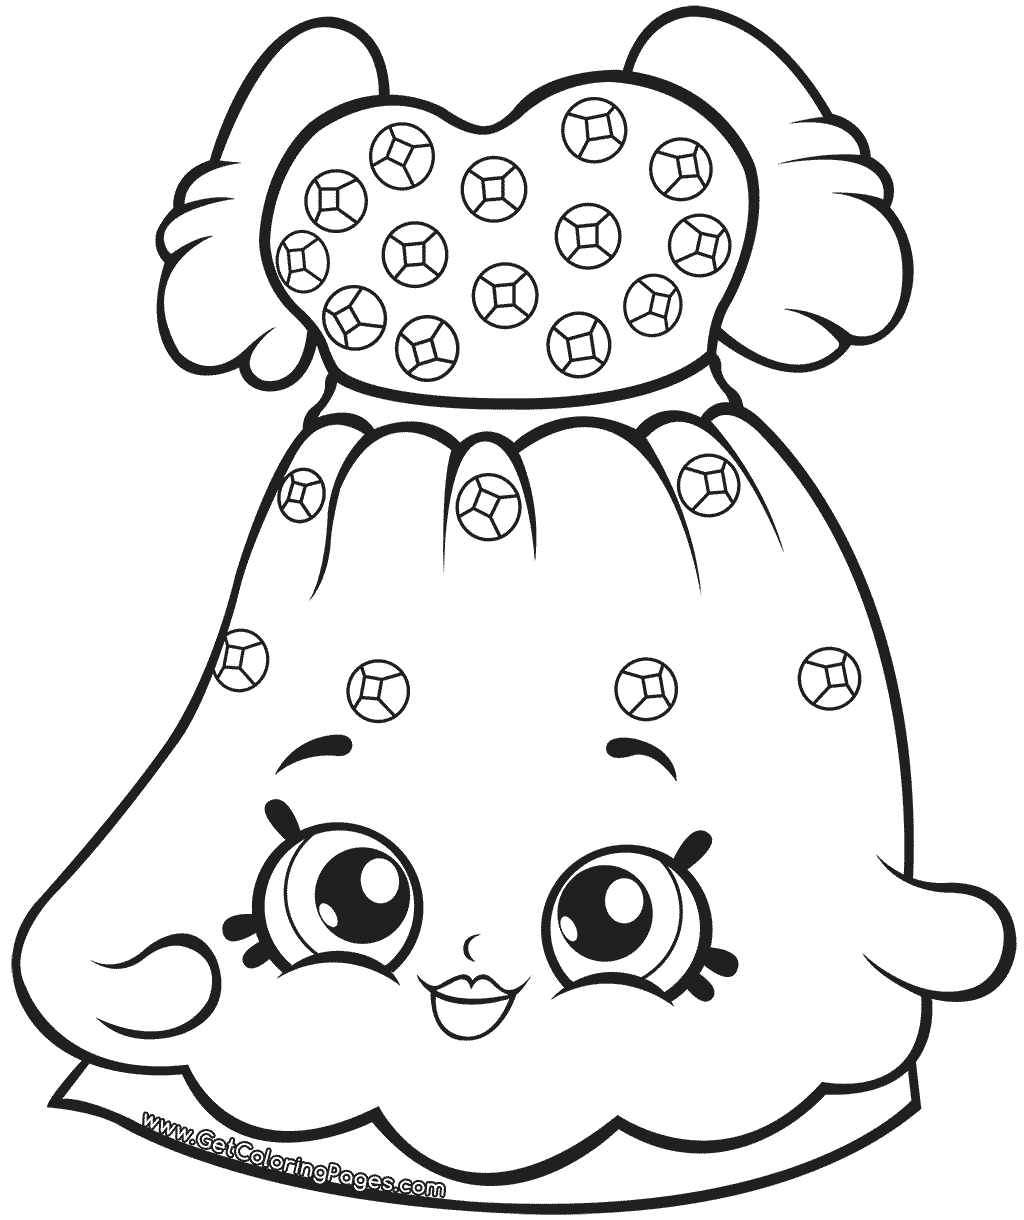 Shopkins Season 7 Coloring Page